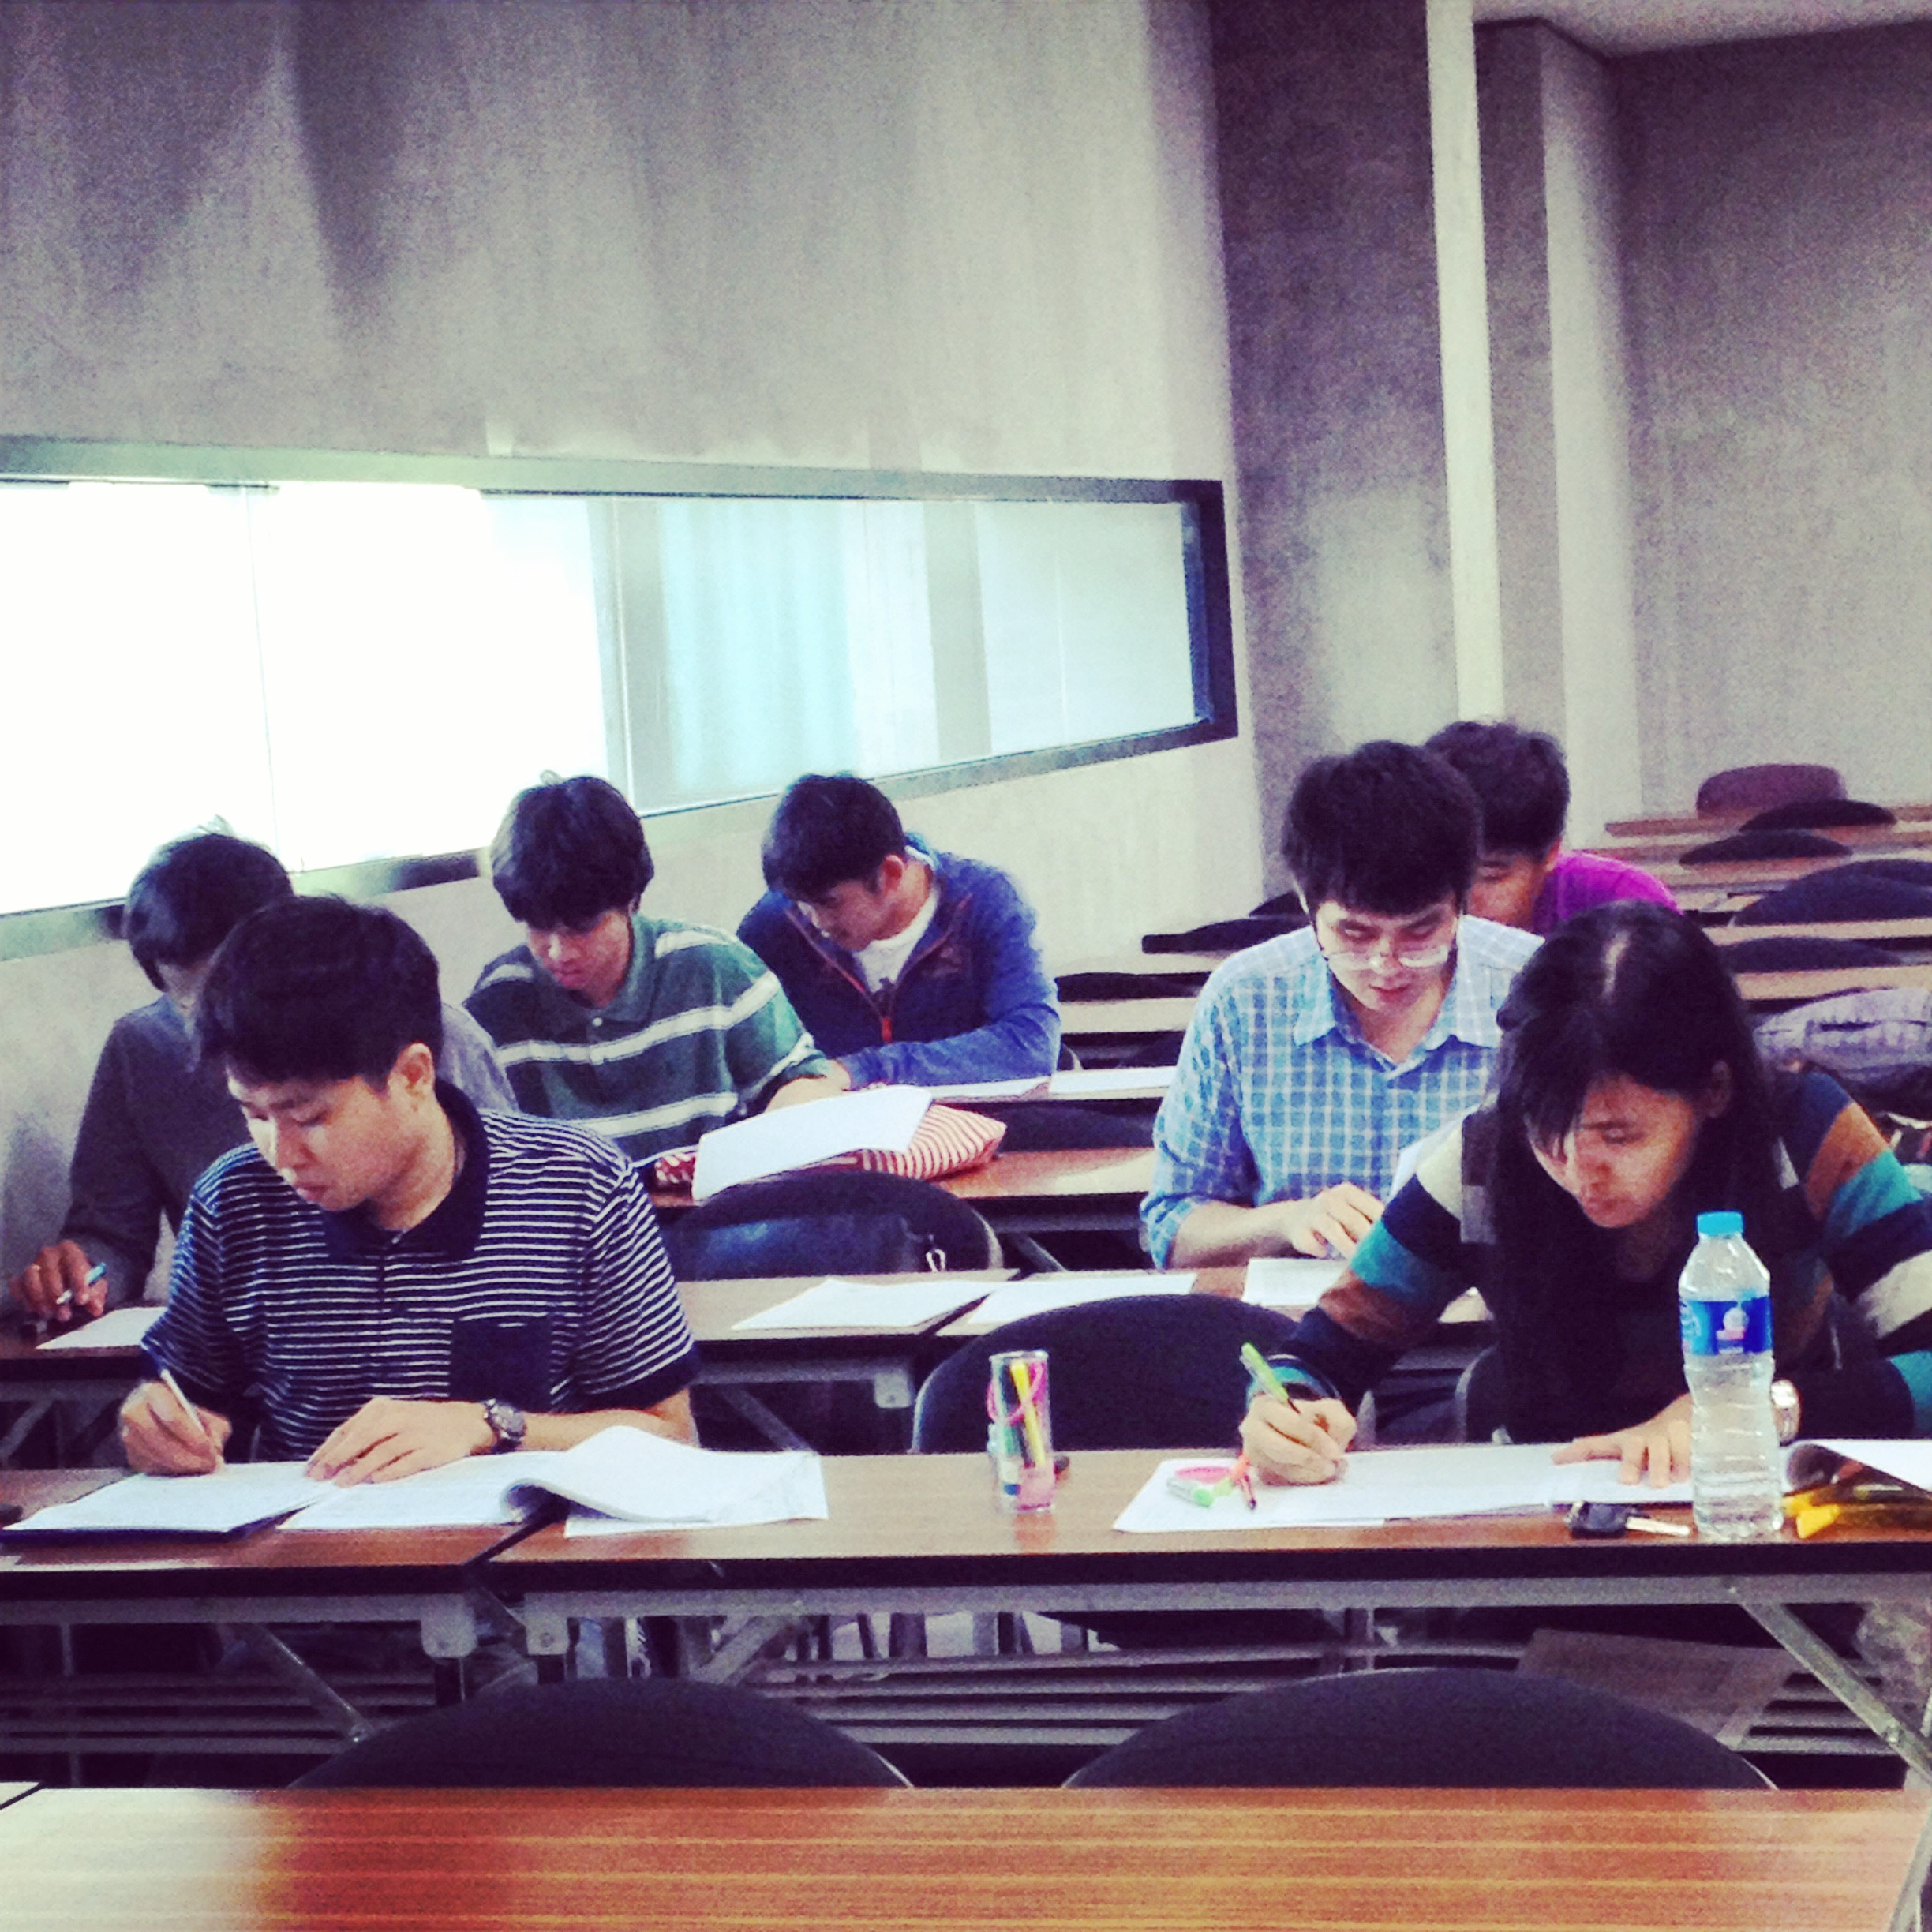 Students in one of Judy Bozone's classes at Mahidol University's College of Music